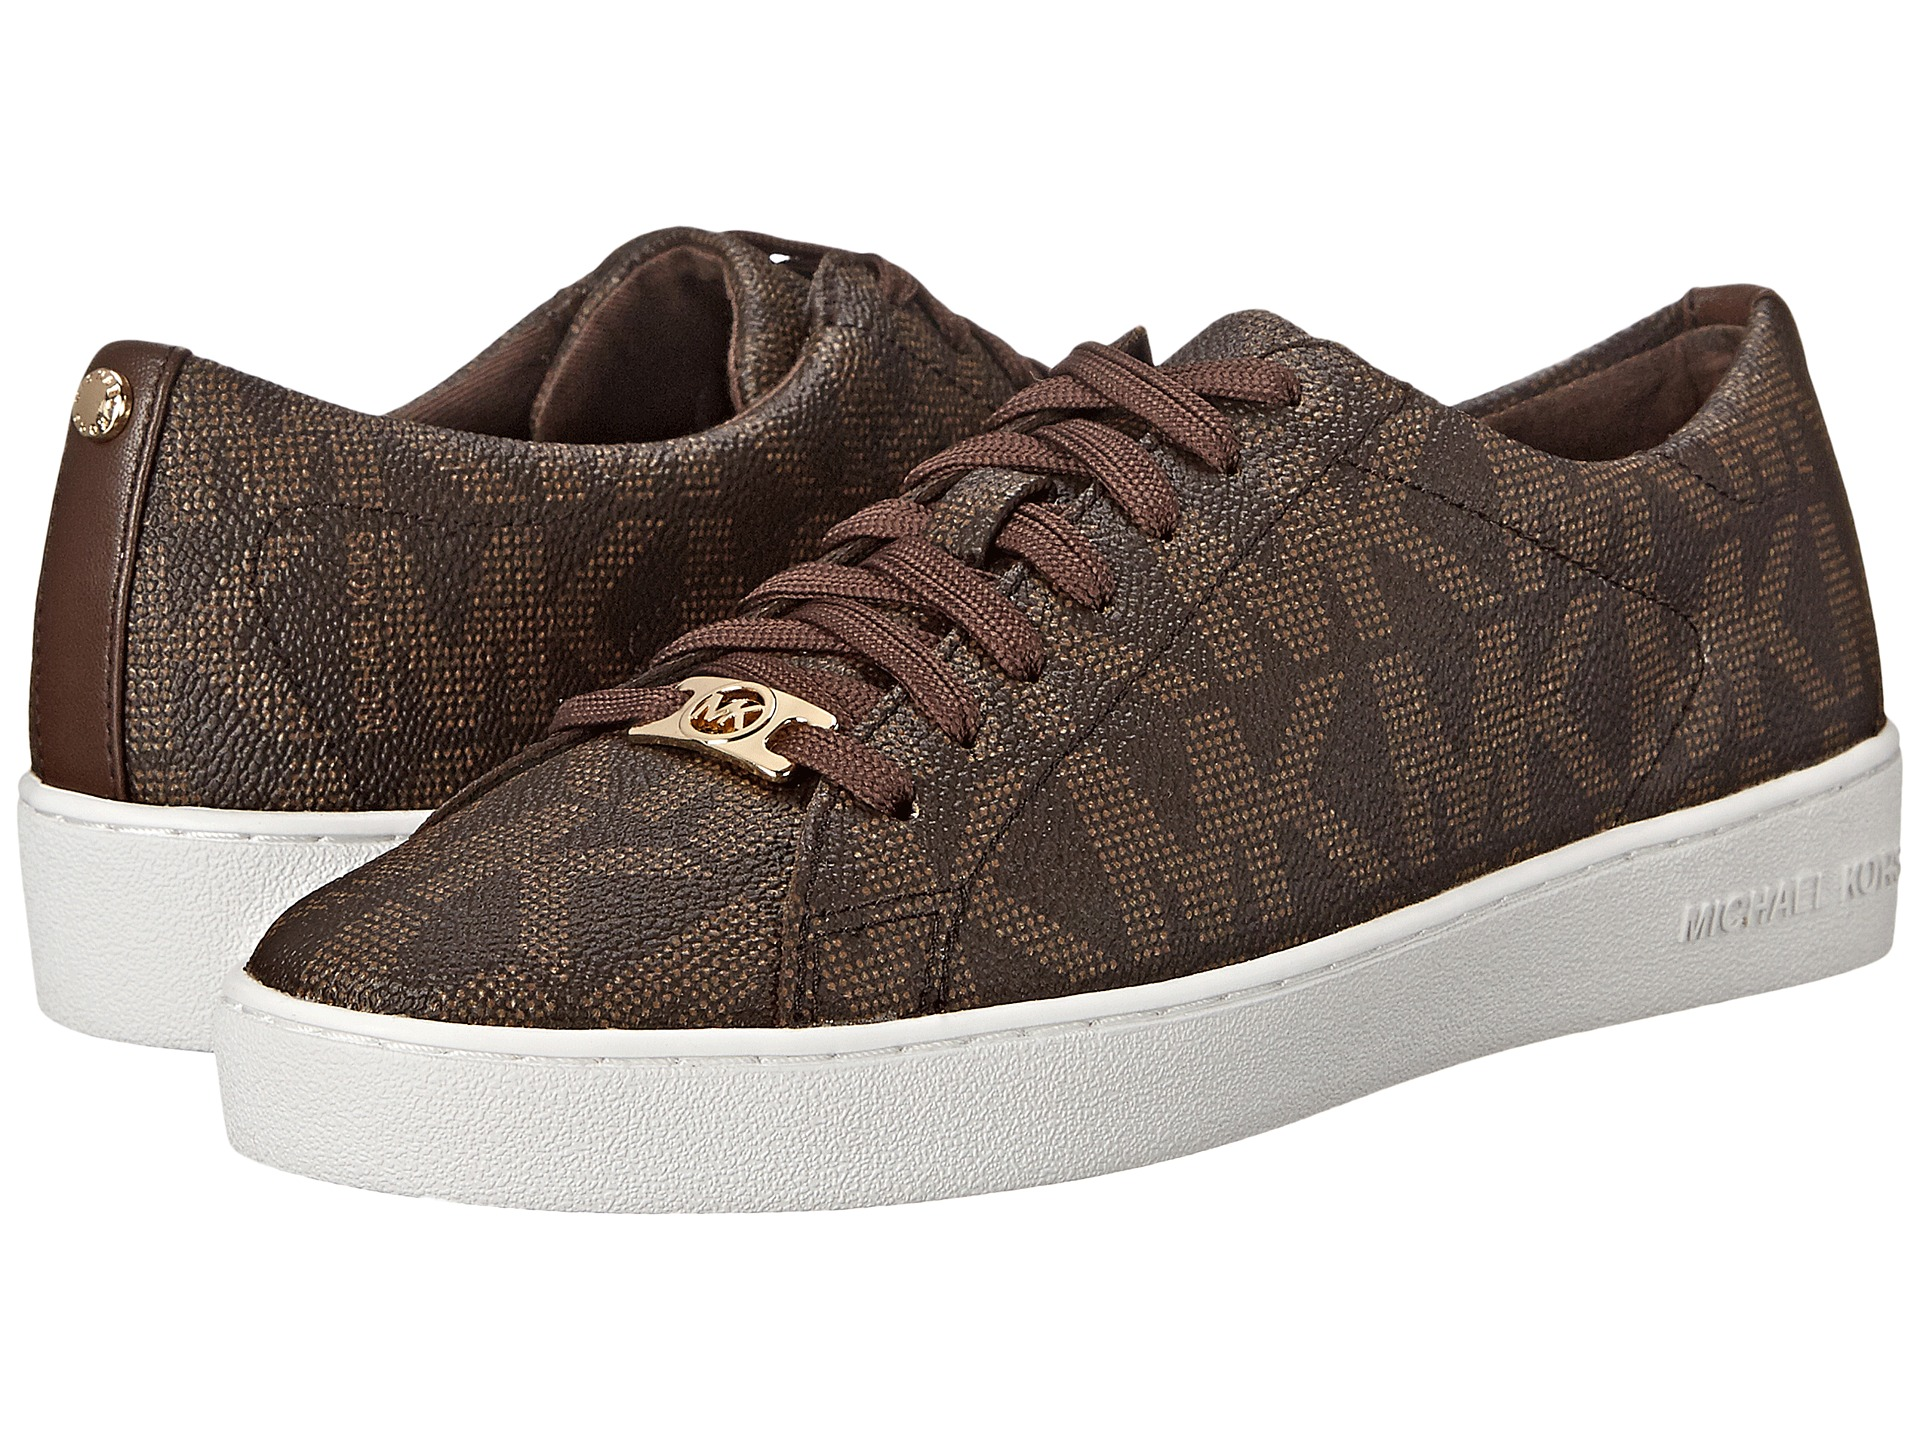 Buy michael kors brown shoes OFF Discounted